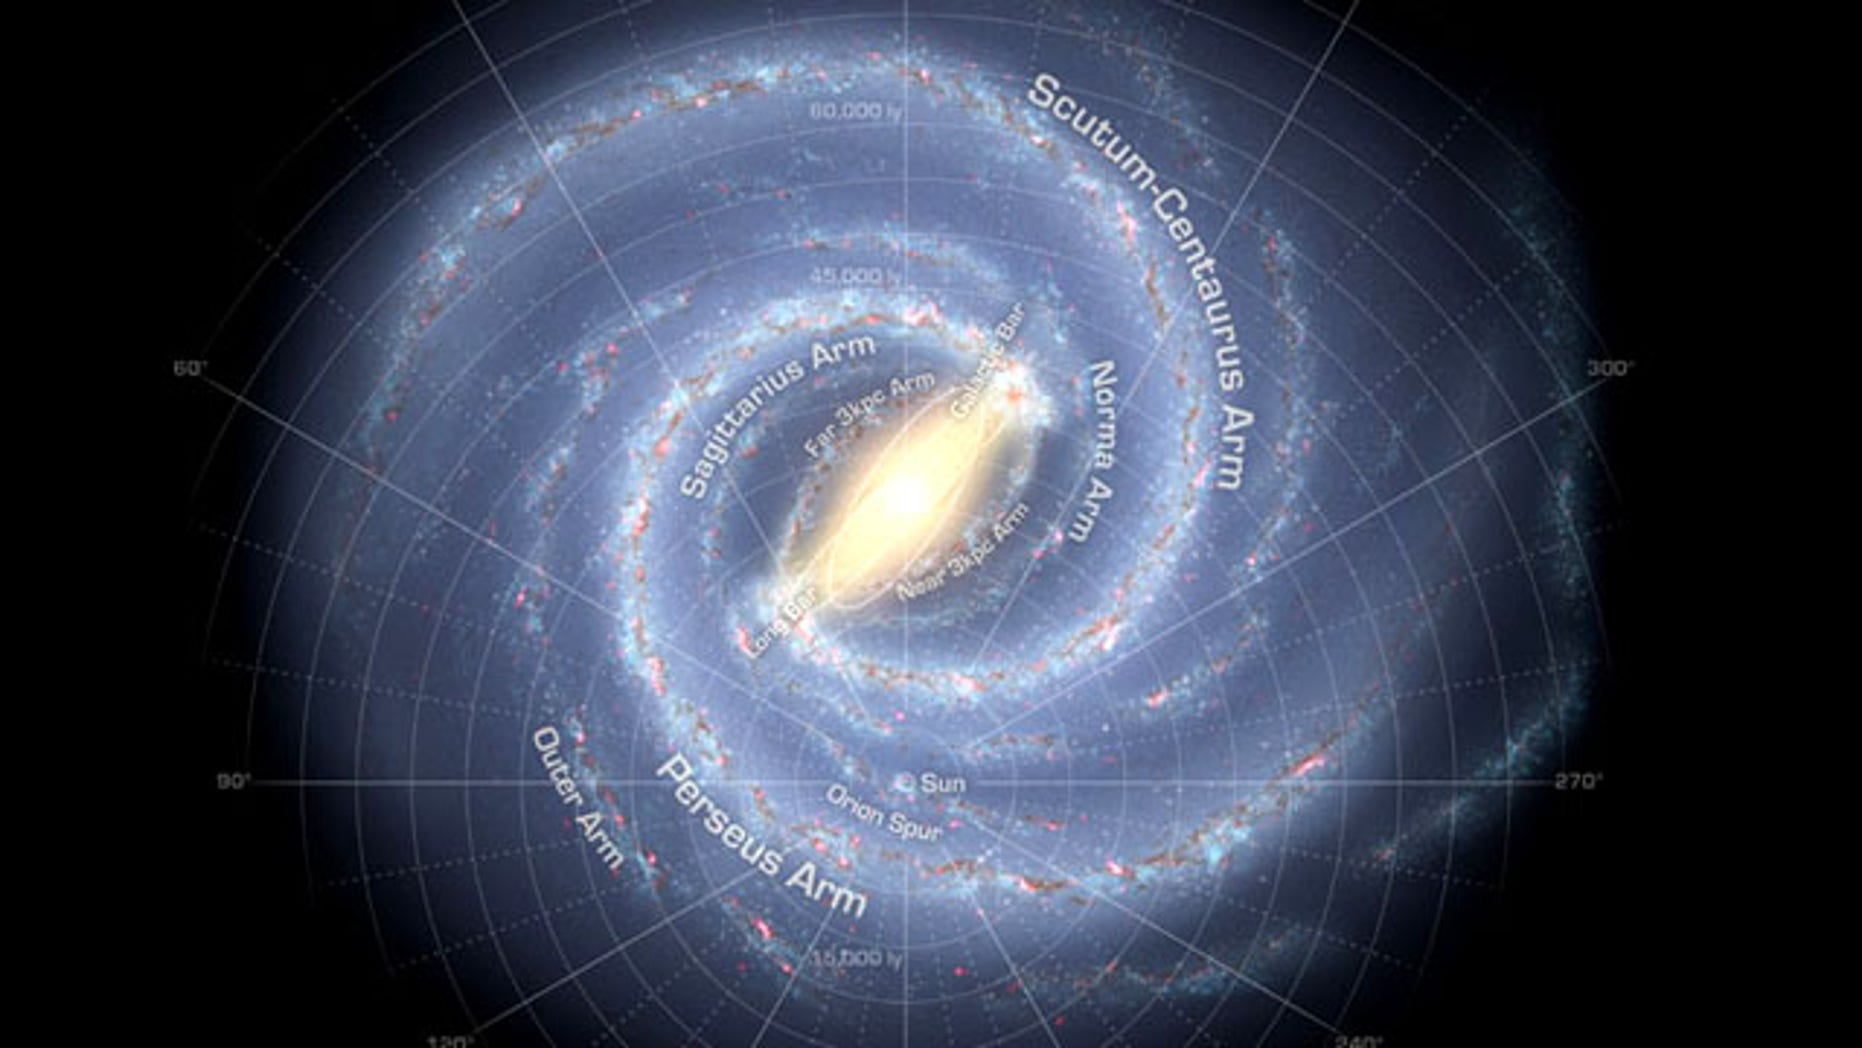 Newly-discovered star-forming regions are concentrated at the end of the Milky Way's central bar and in the spiral arms.